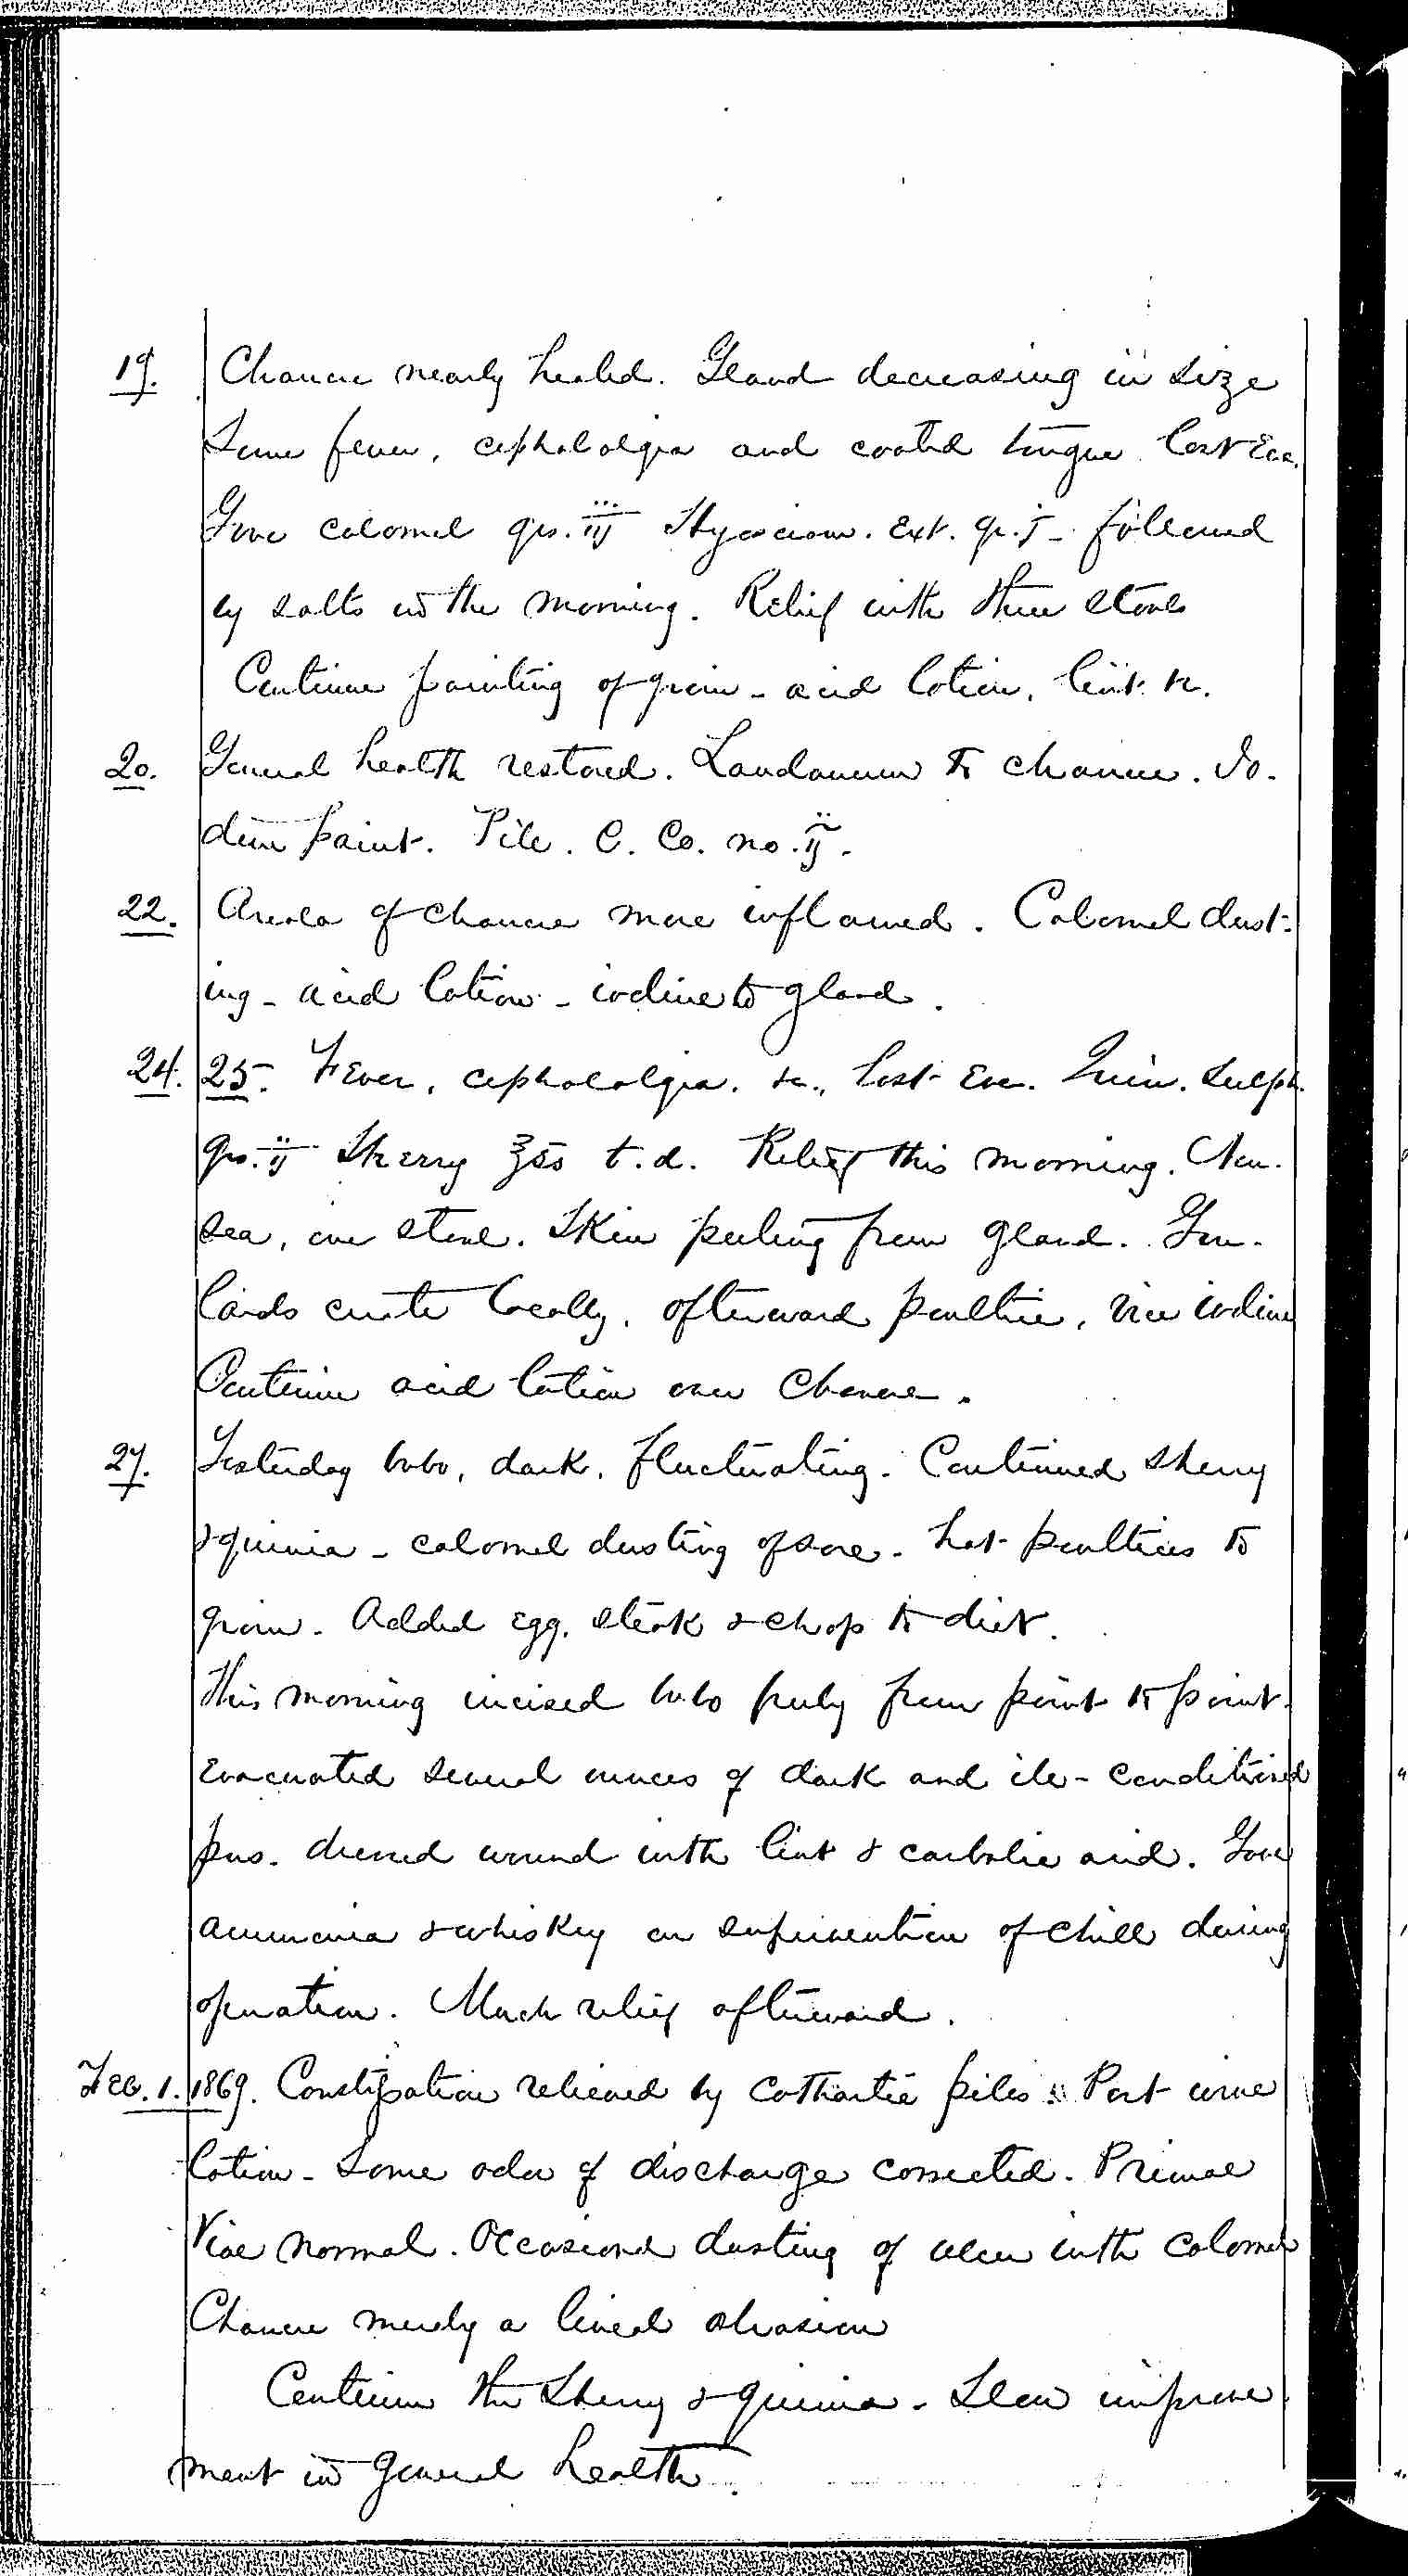 Entry for John H. Denning (first admission page 2 of 9) in the log Hospital Tickets and Case Papers - Naval Hospital - Washington, D.C. - 1868-69